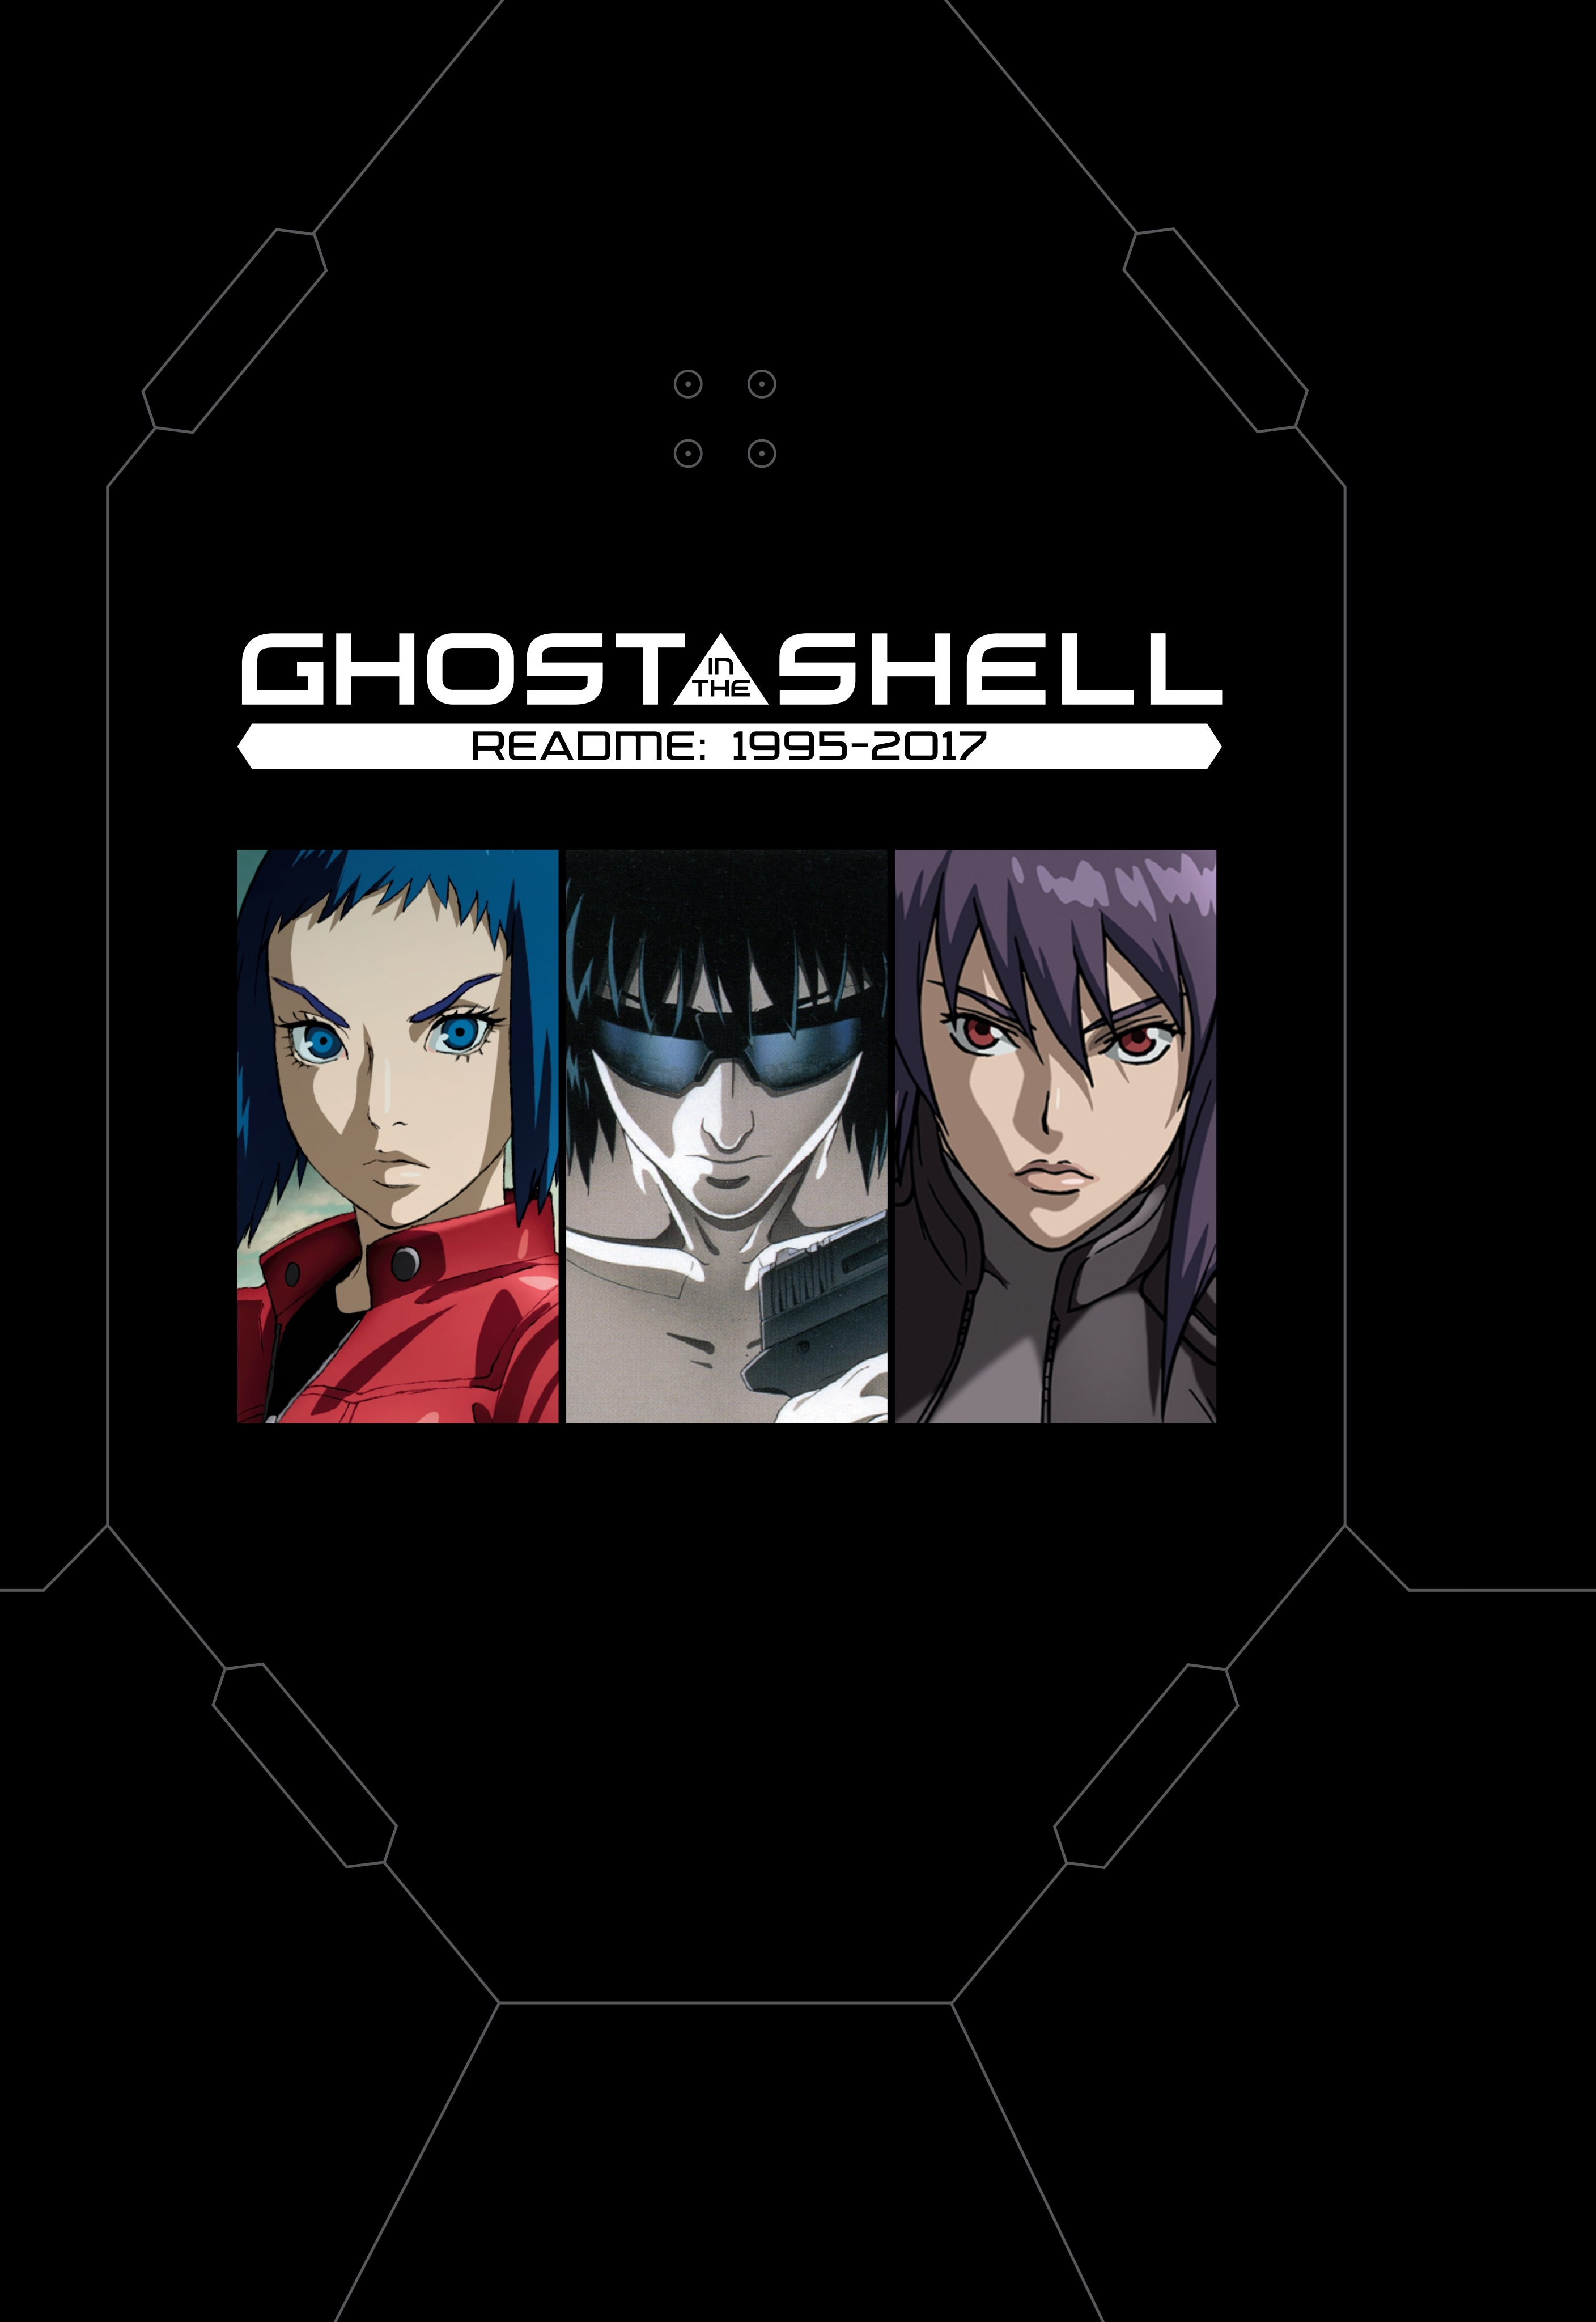 The Ghost In The Shell Readme 1995 2017 By Shirow Masamune Penguin Books Australia